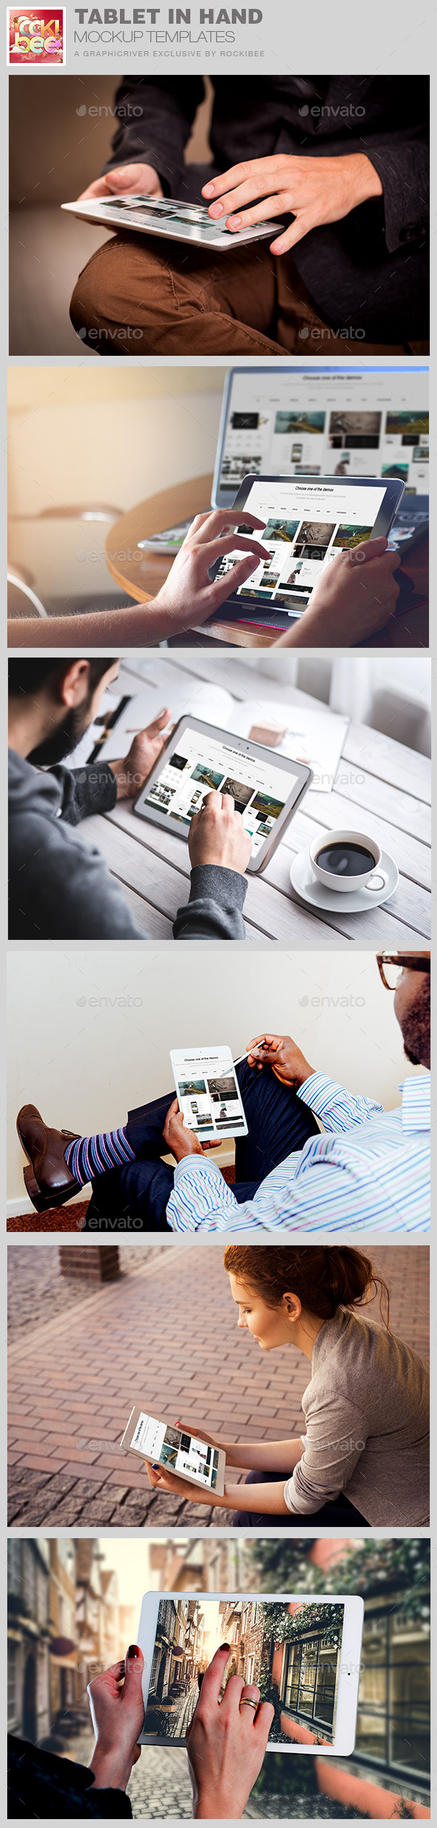 Tablet in Hand Mockup Template by loswl